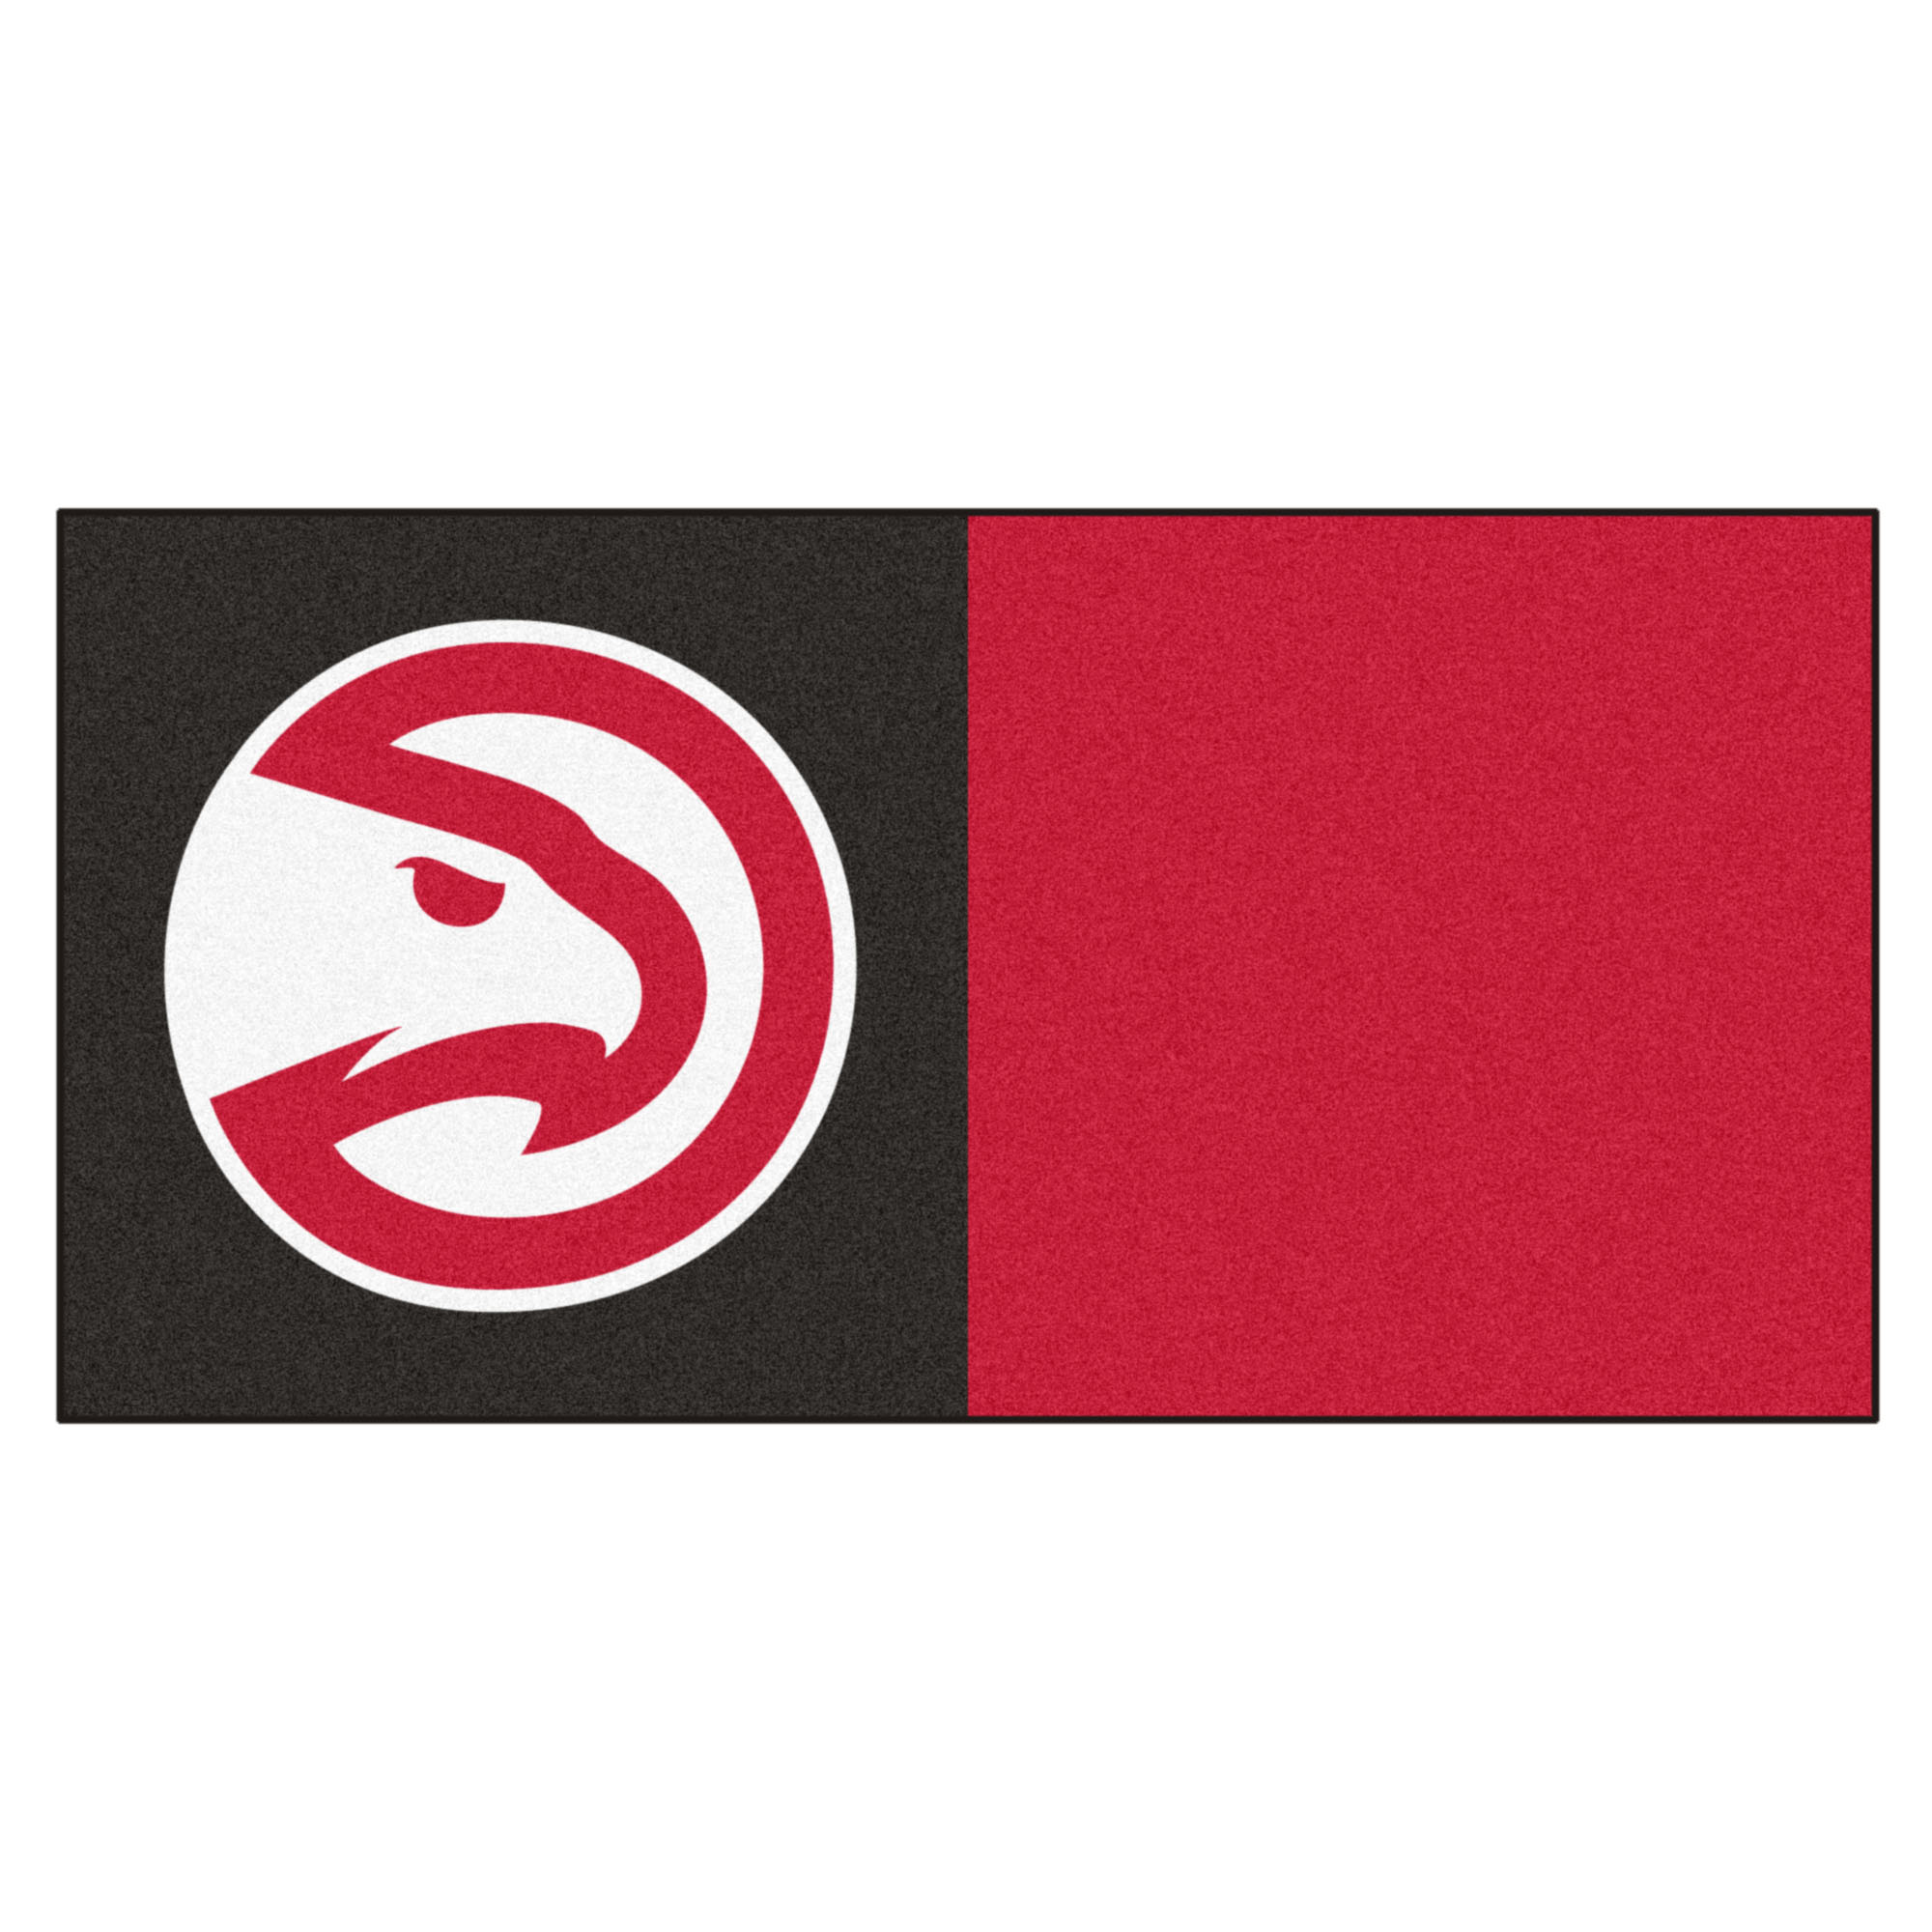 NBA Atlanta Hawks Team Carpet Tile Flooring Squares, 20-PC Set